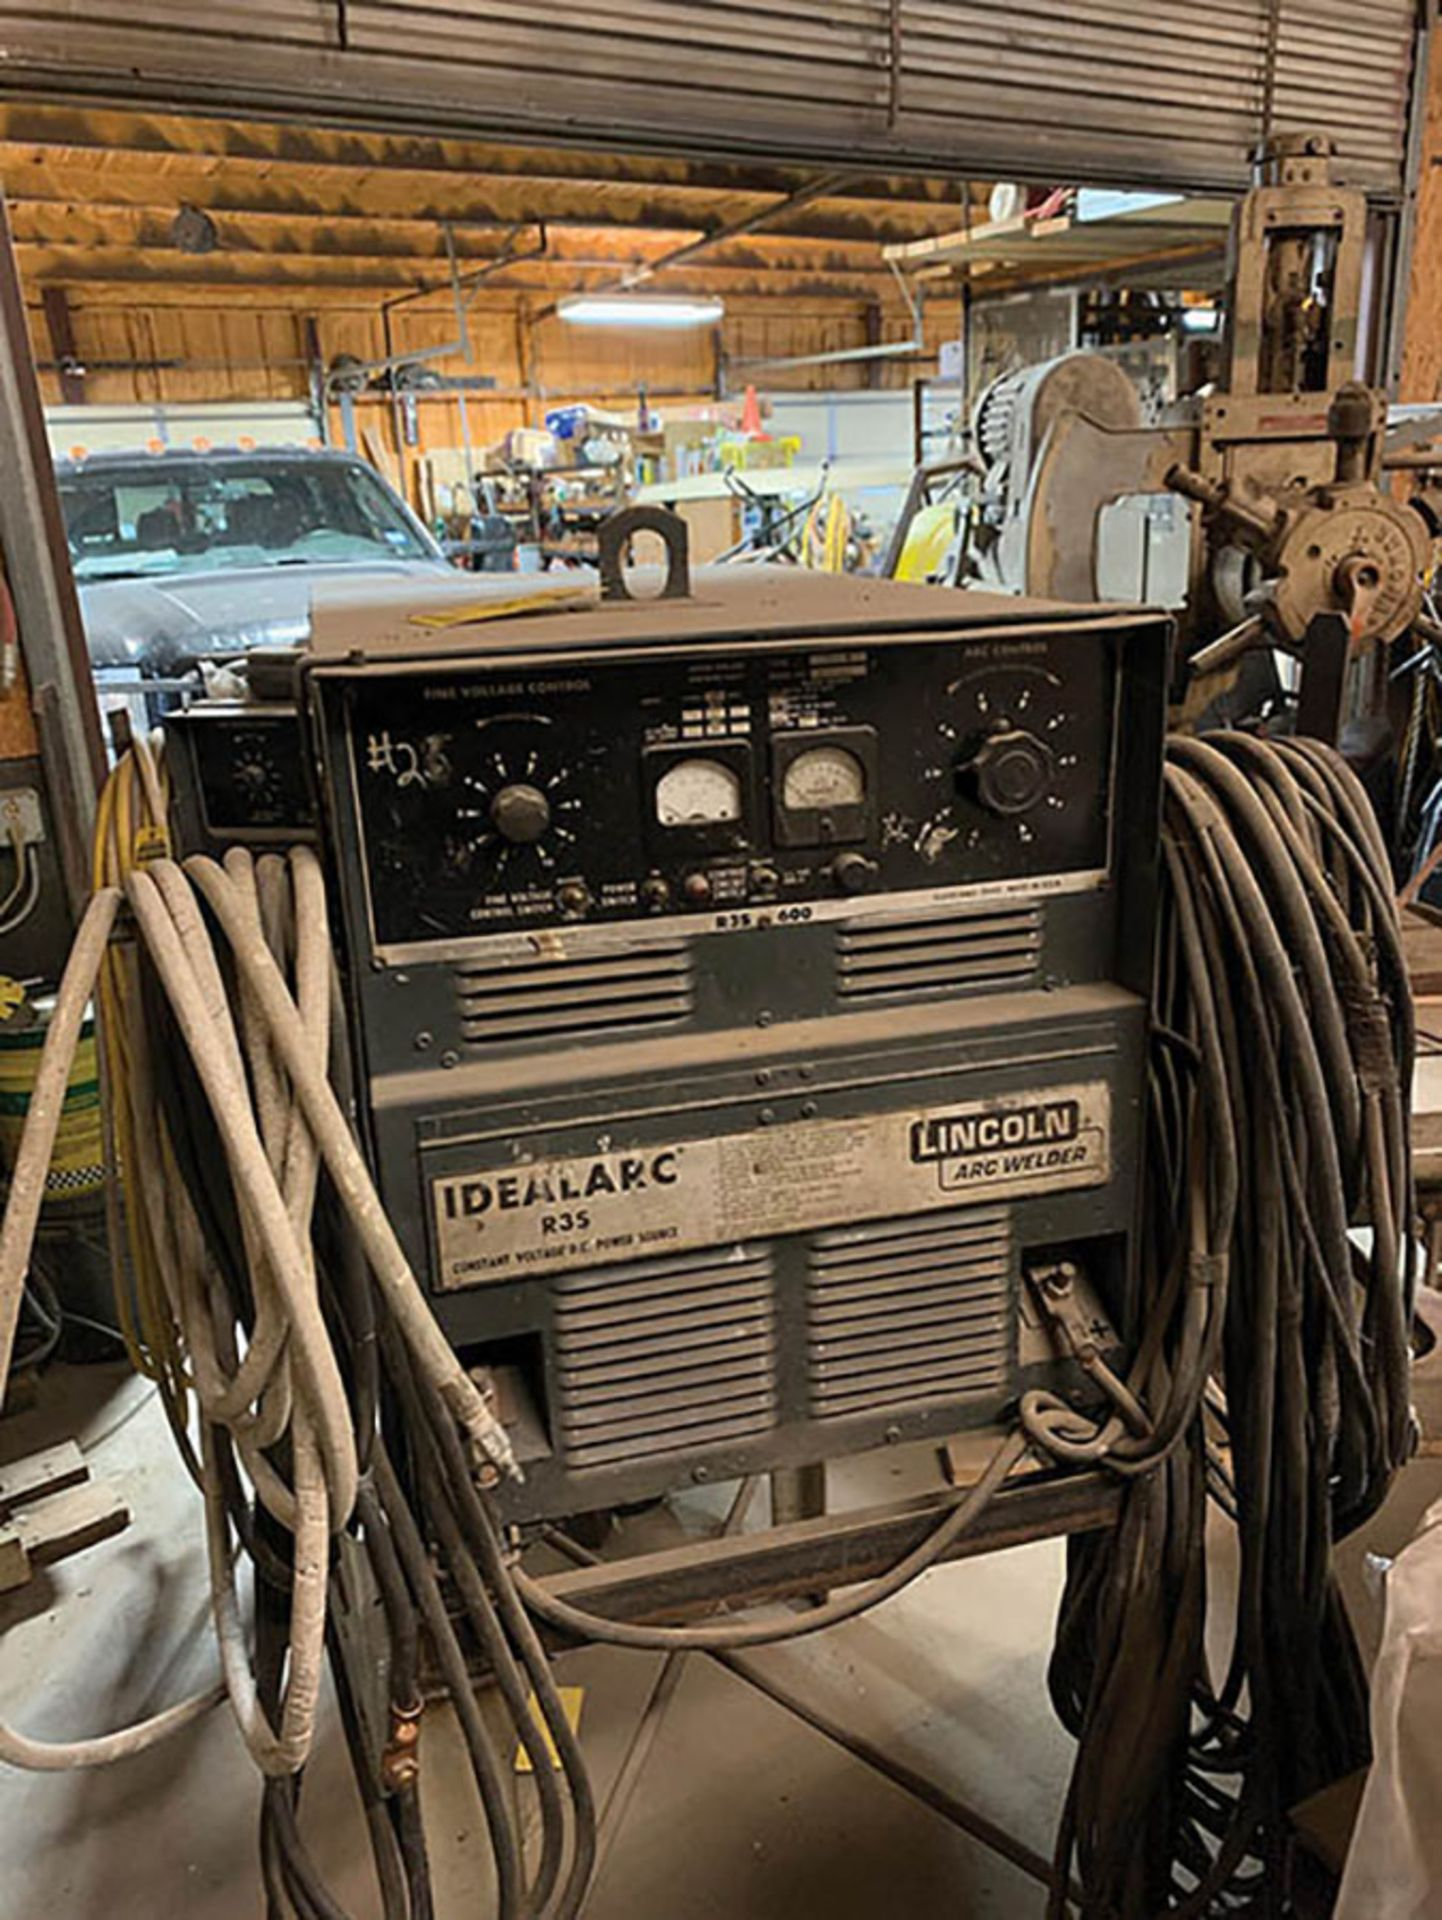 LINCOLN R3S 600 WELDING POWER SOURCE, S/N AC374411